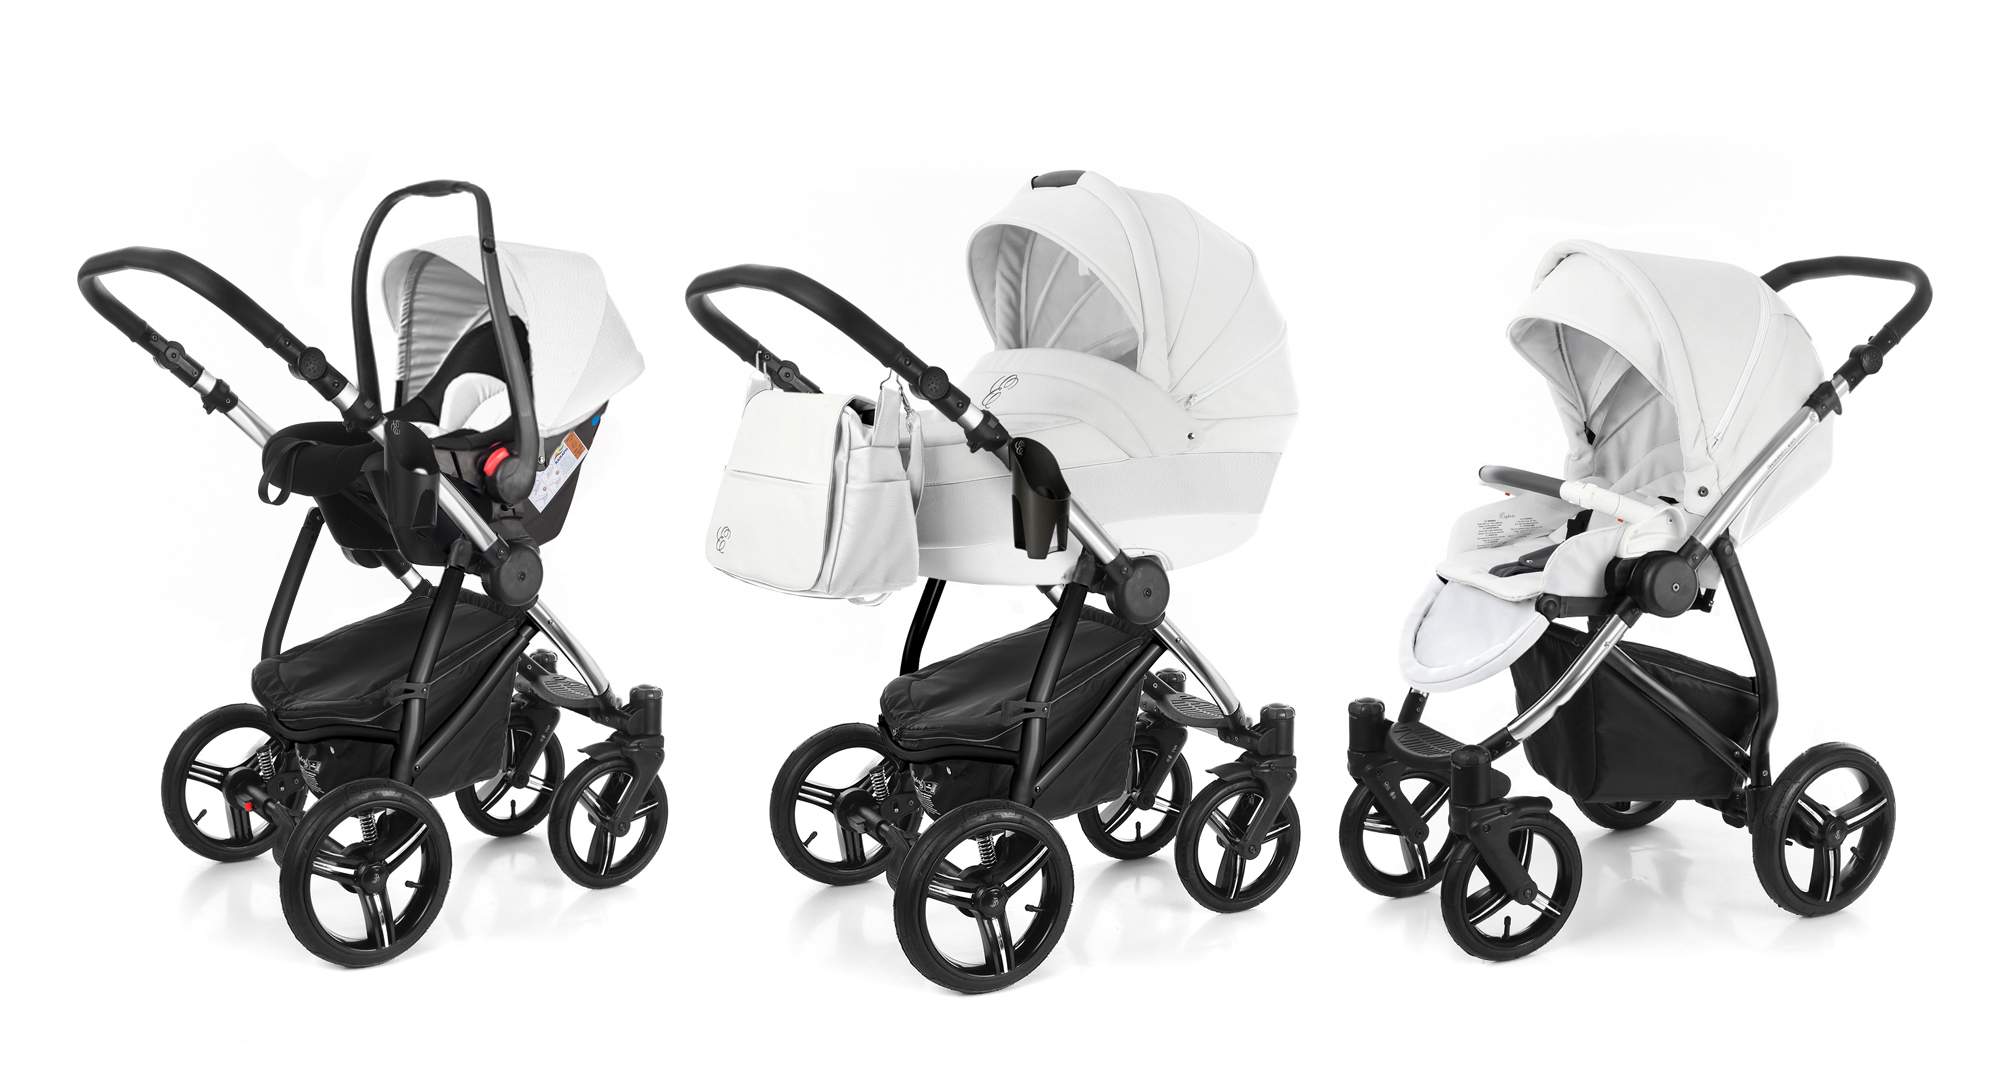 Коляска 3 в 1 Esspero Grand Newborn Lux (шасси Chrome) Argtic leatherette